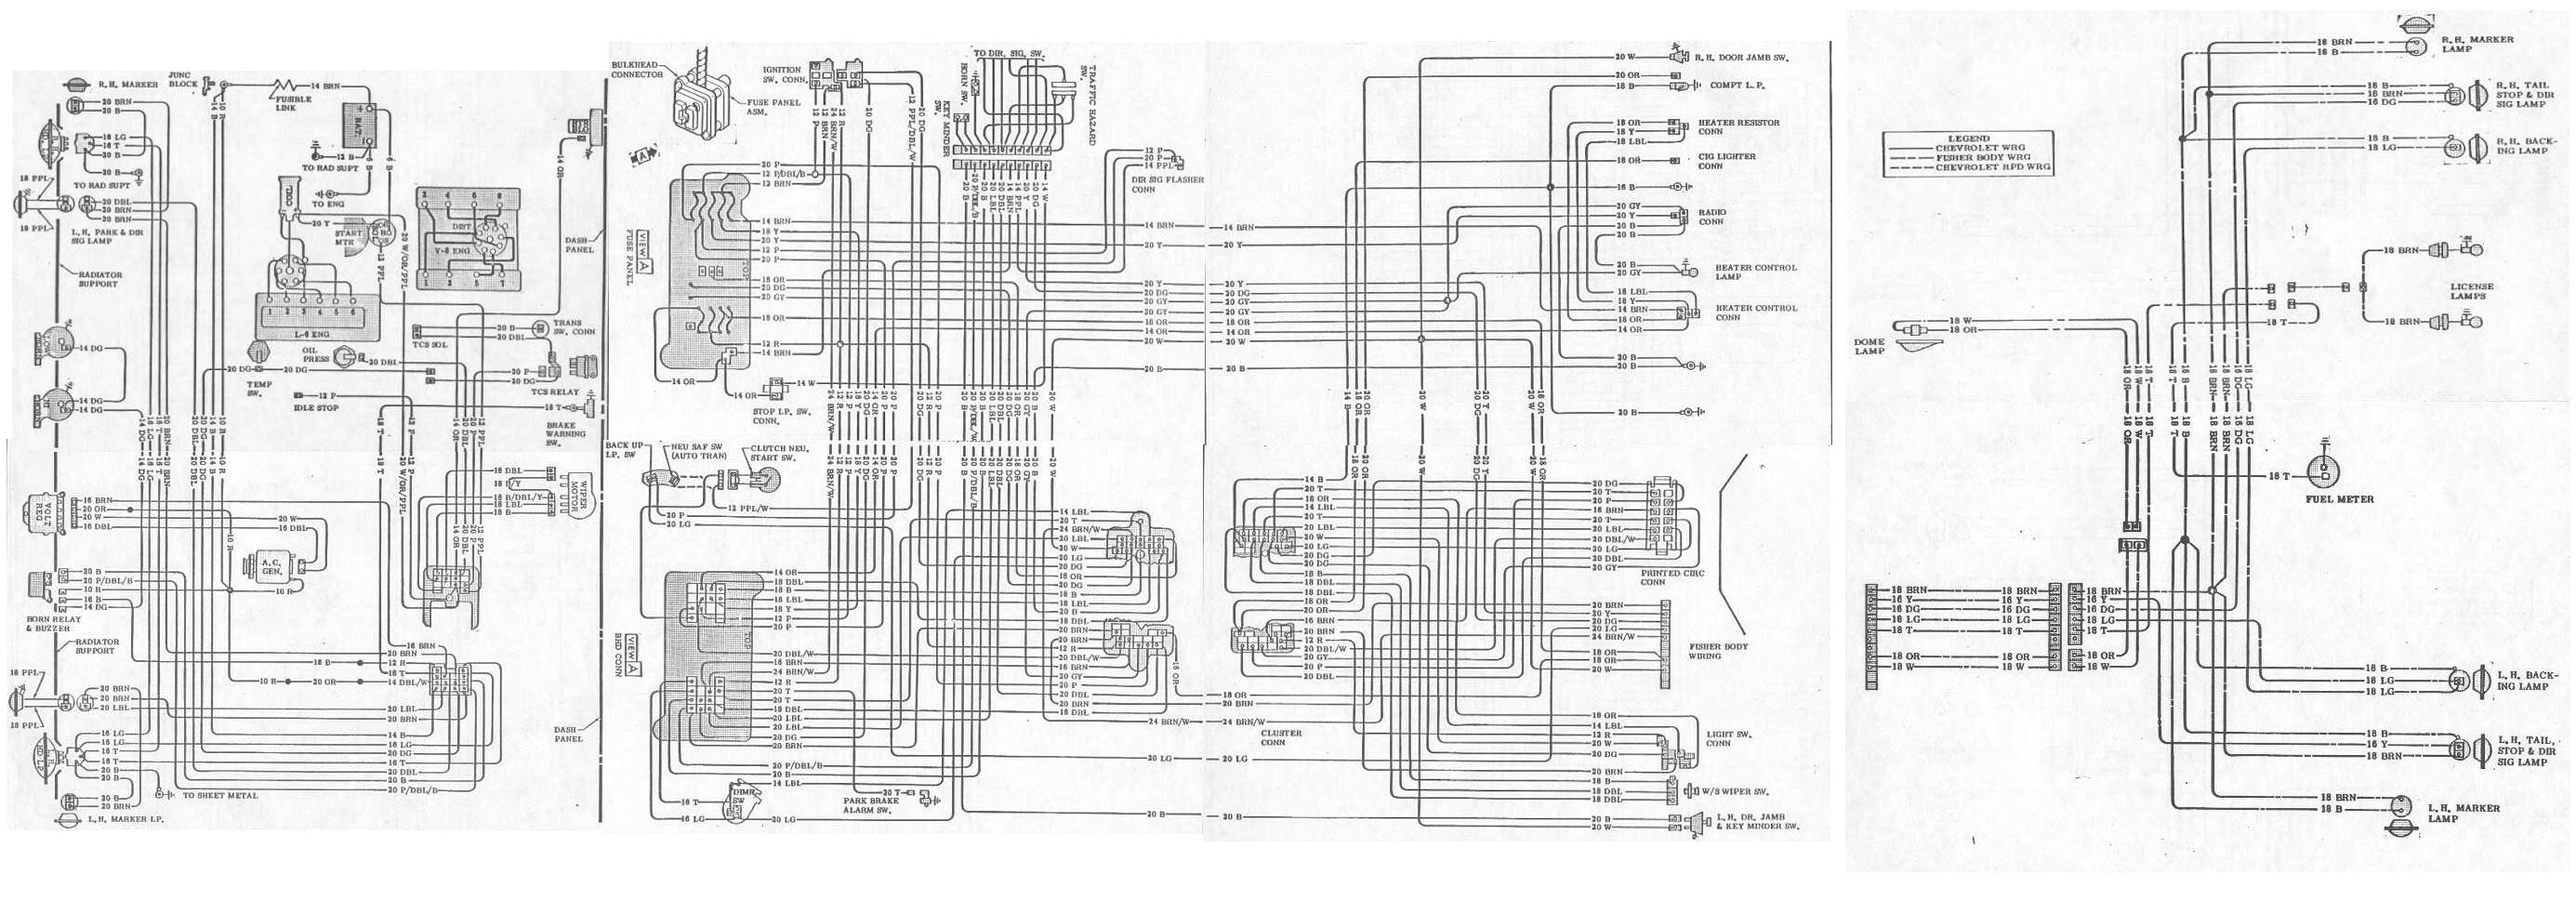 1979 Firebird Wiring Diagram